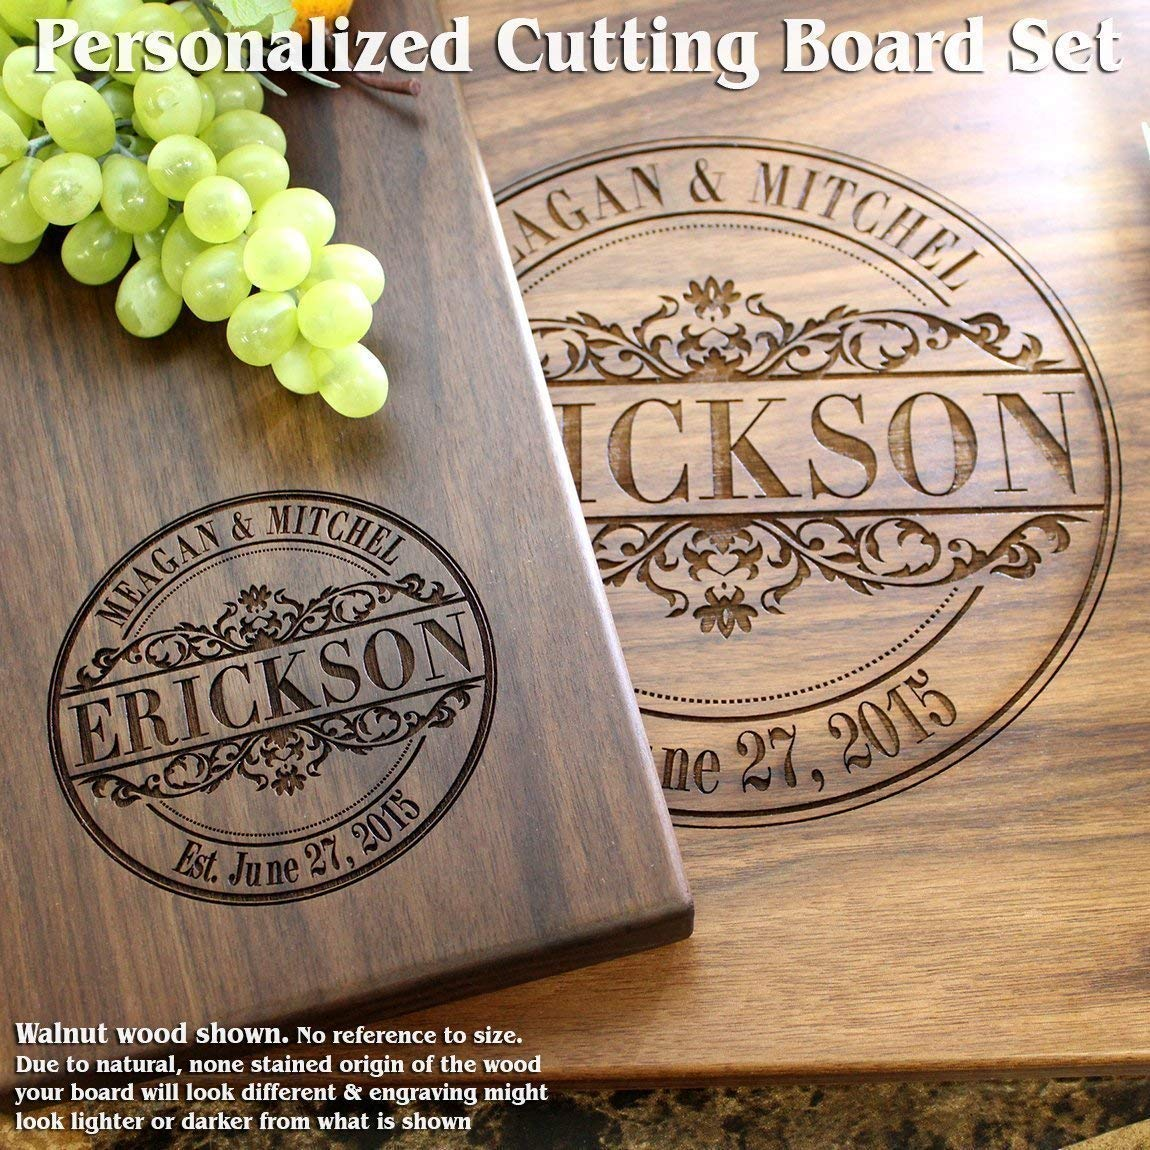 Round Vintage Personalized Engraved Cutting Board Set- Wedding Gift, Anniversary Gifts, Housewarming Gift,Birthday Gift, Corporate Gift, Award, Promotion #010